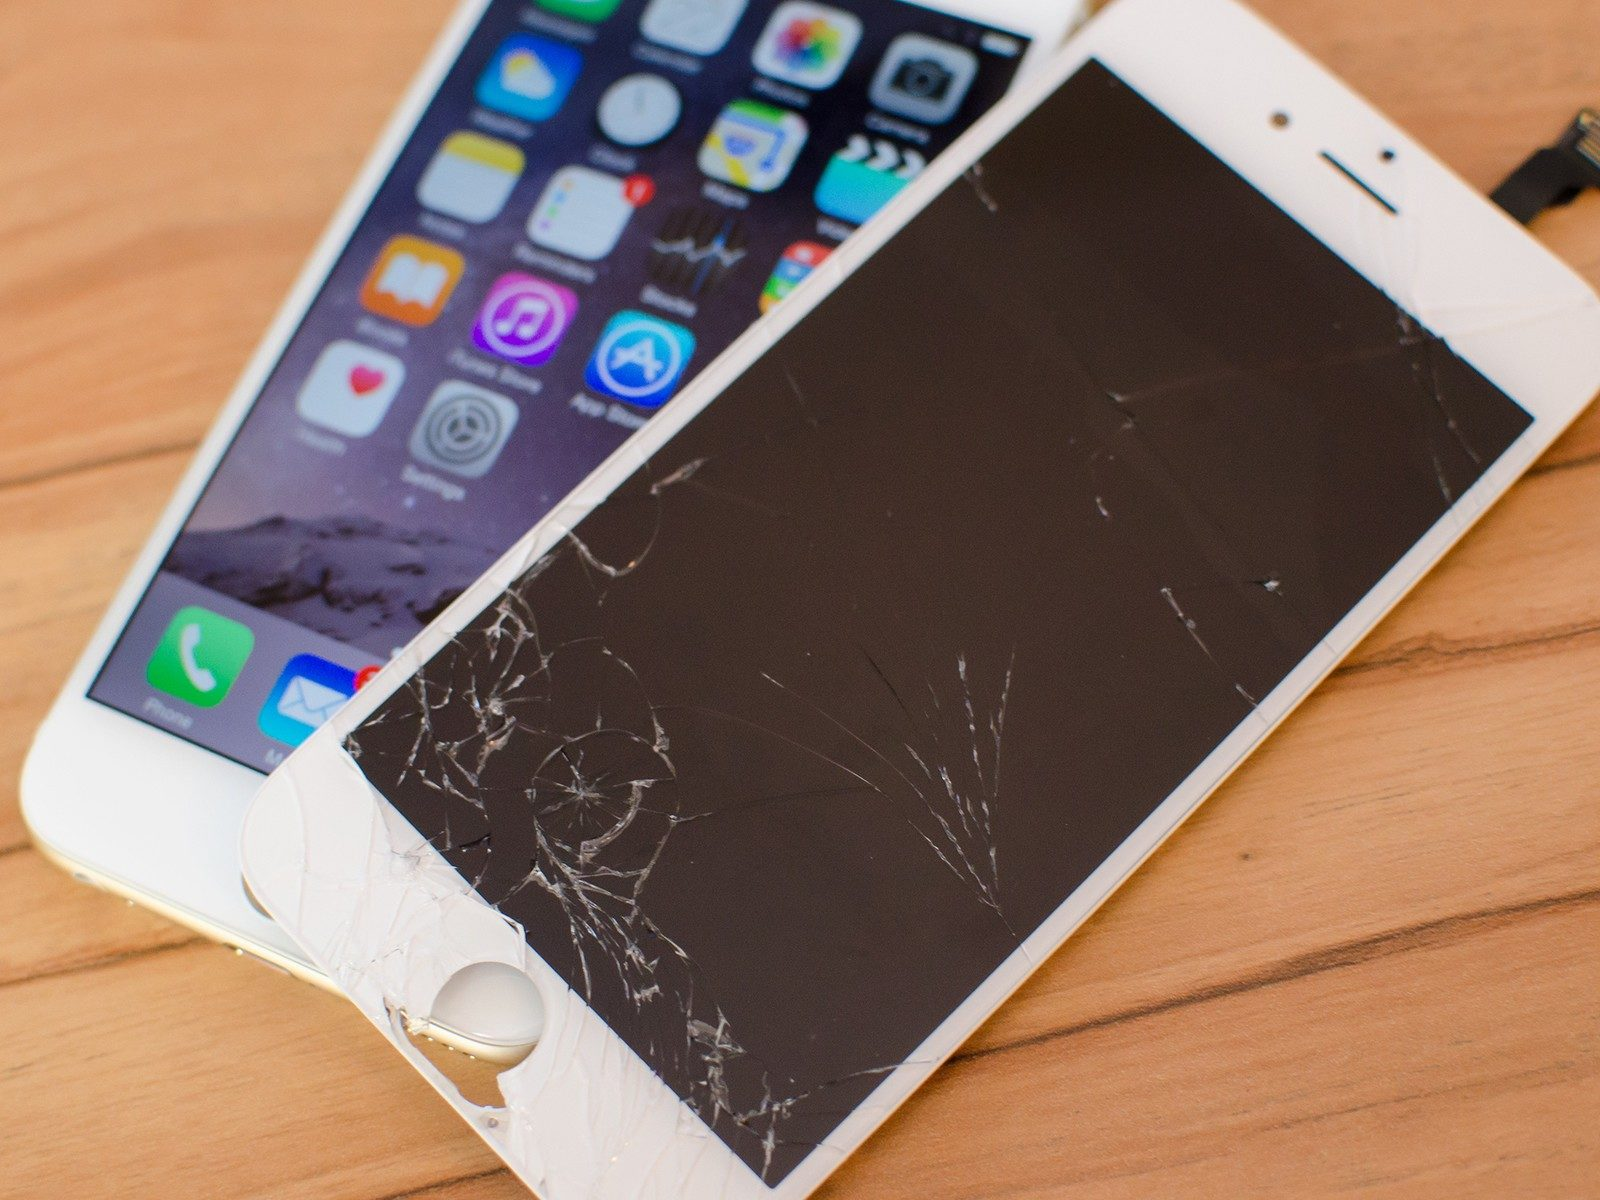 Iphone Repair in Mumbai - Apple Solution